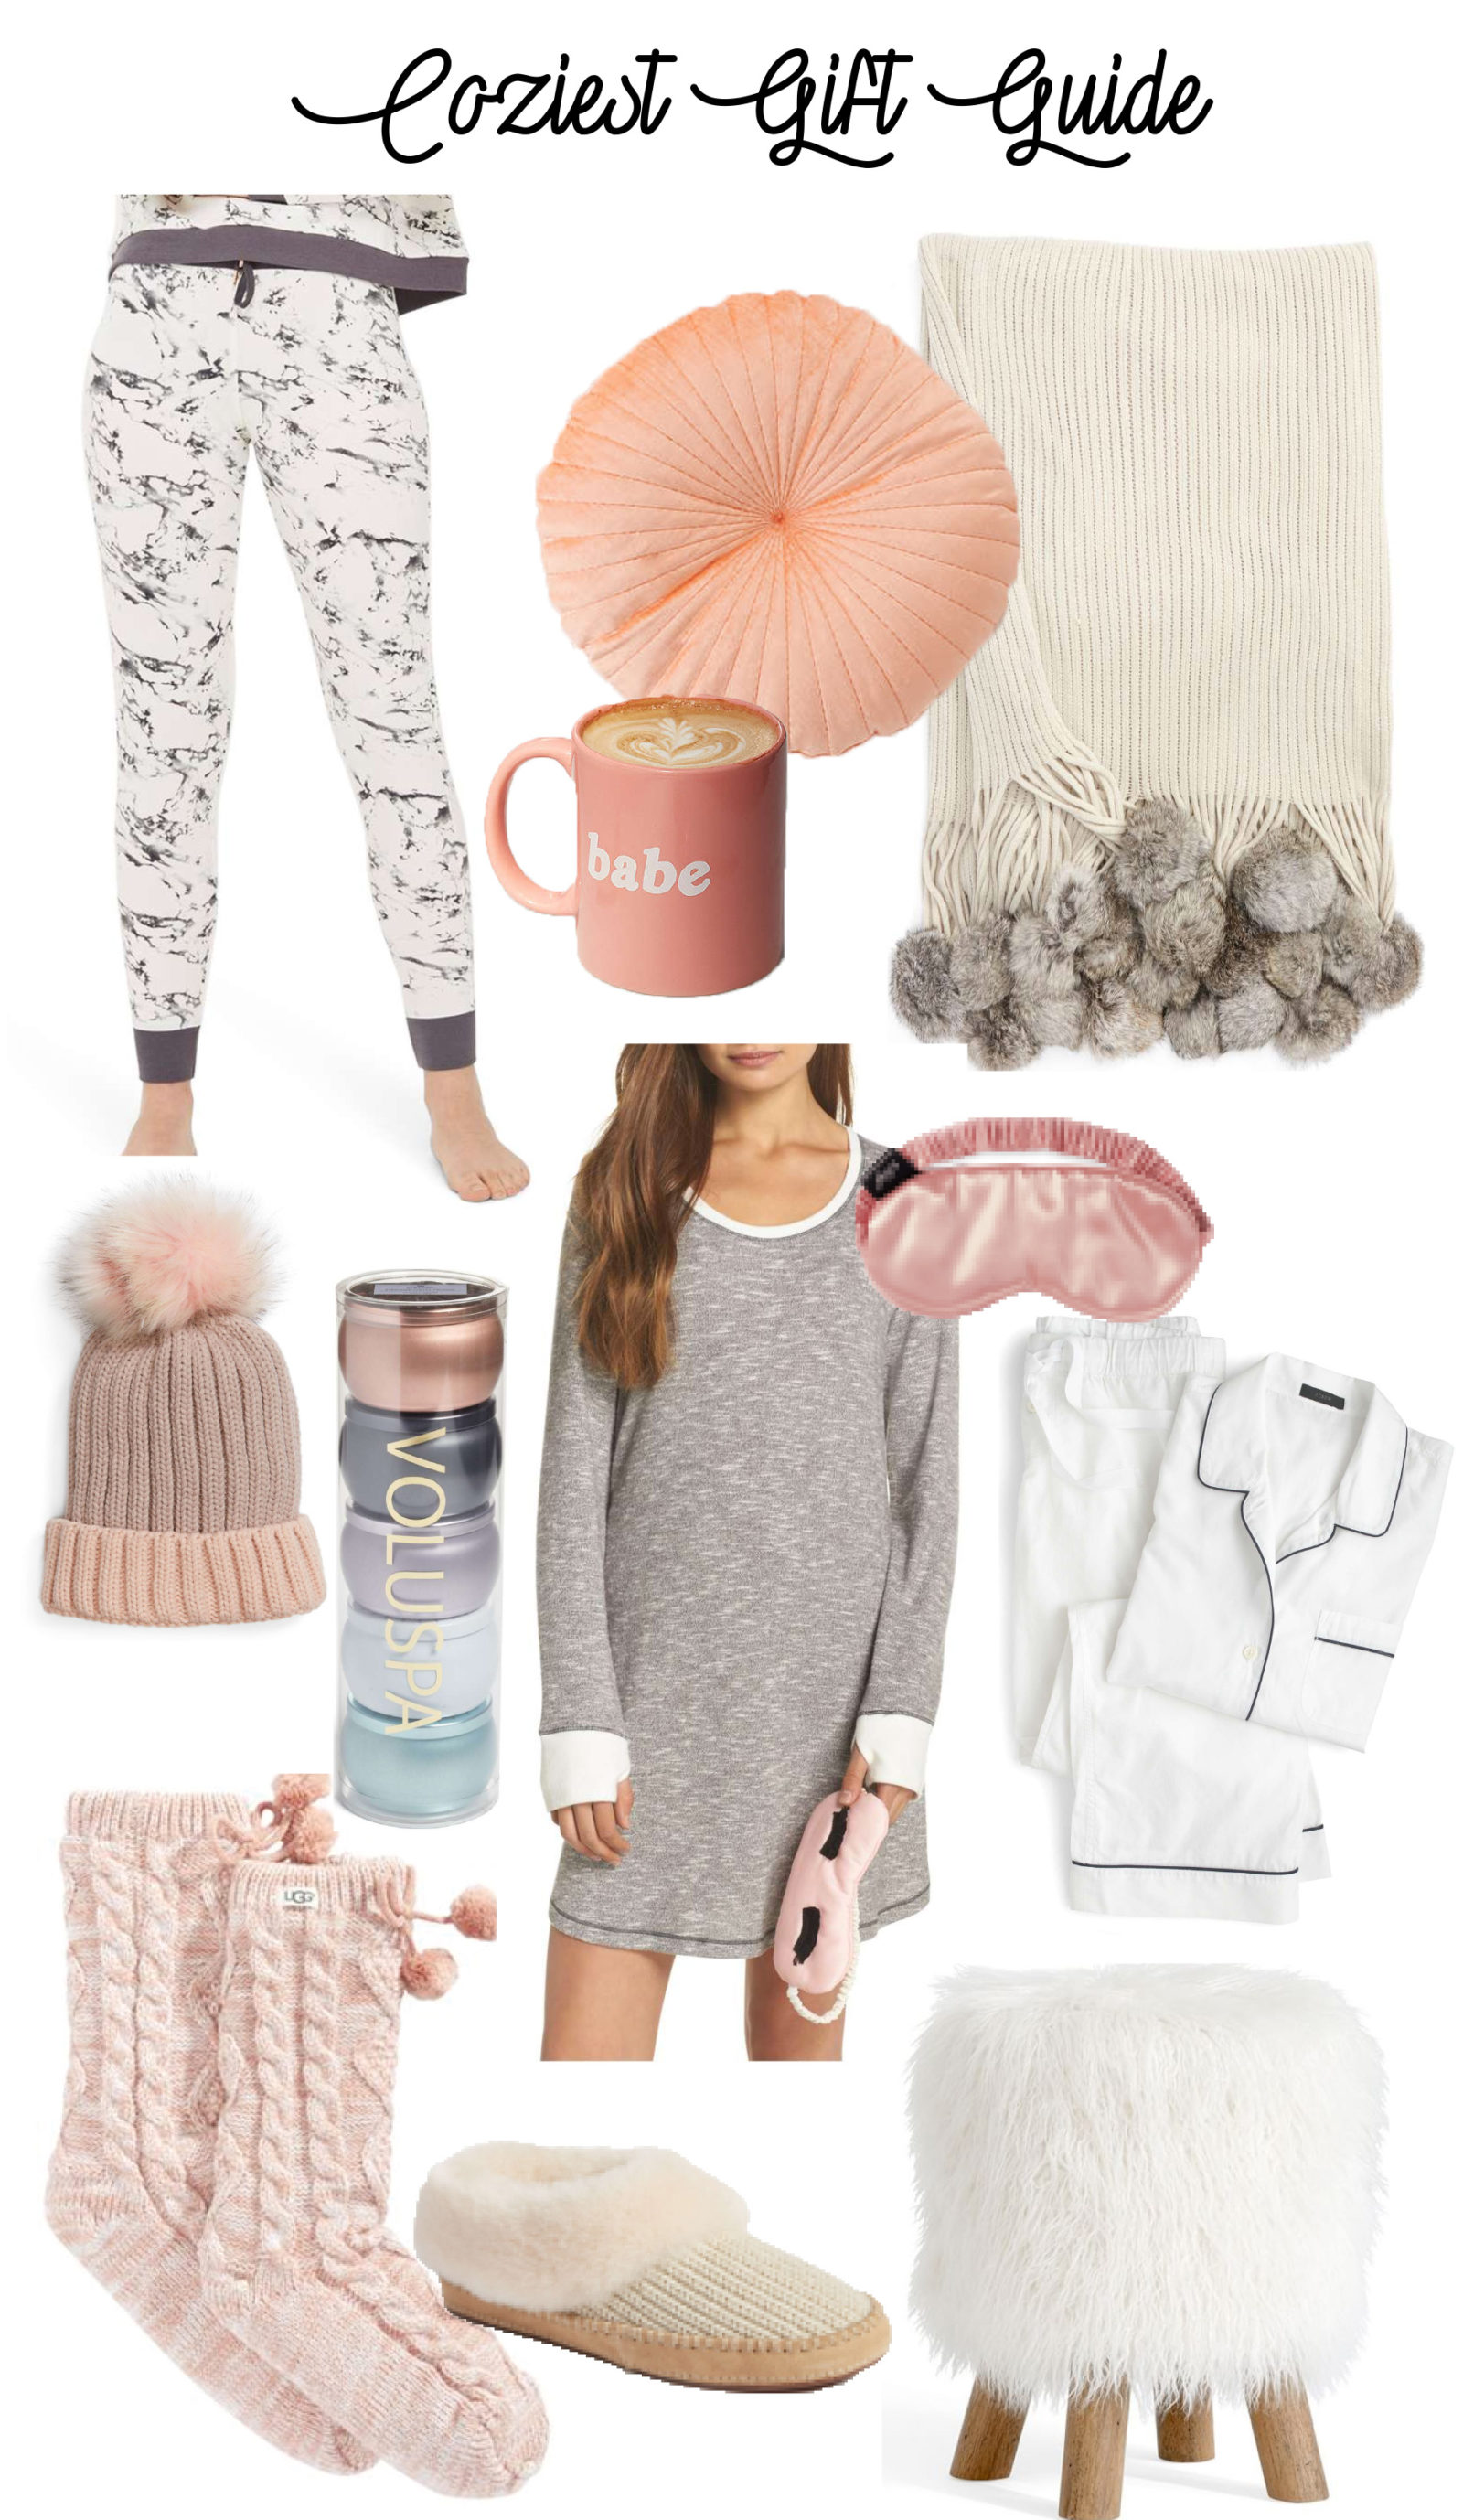 Coziest Holiday Gift Guide 2017